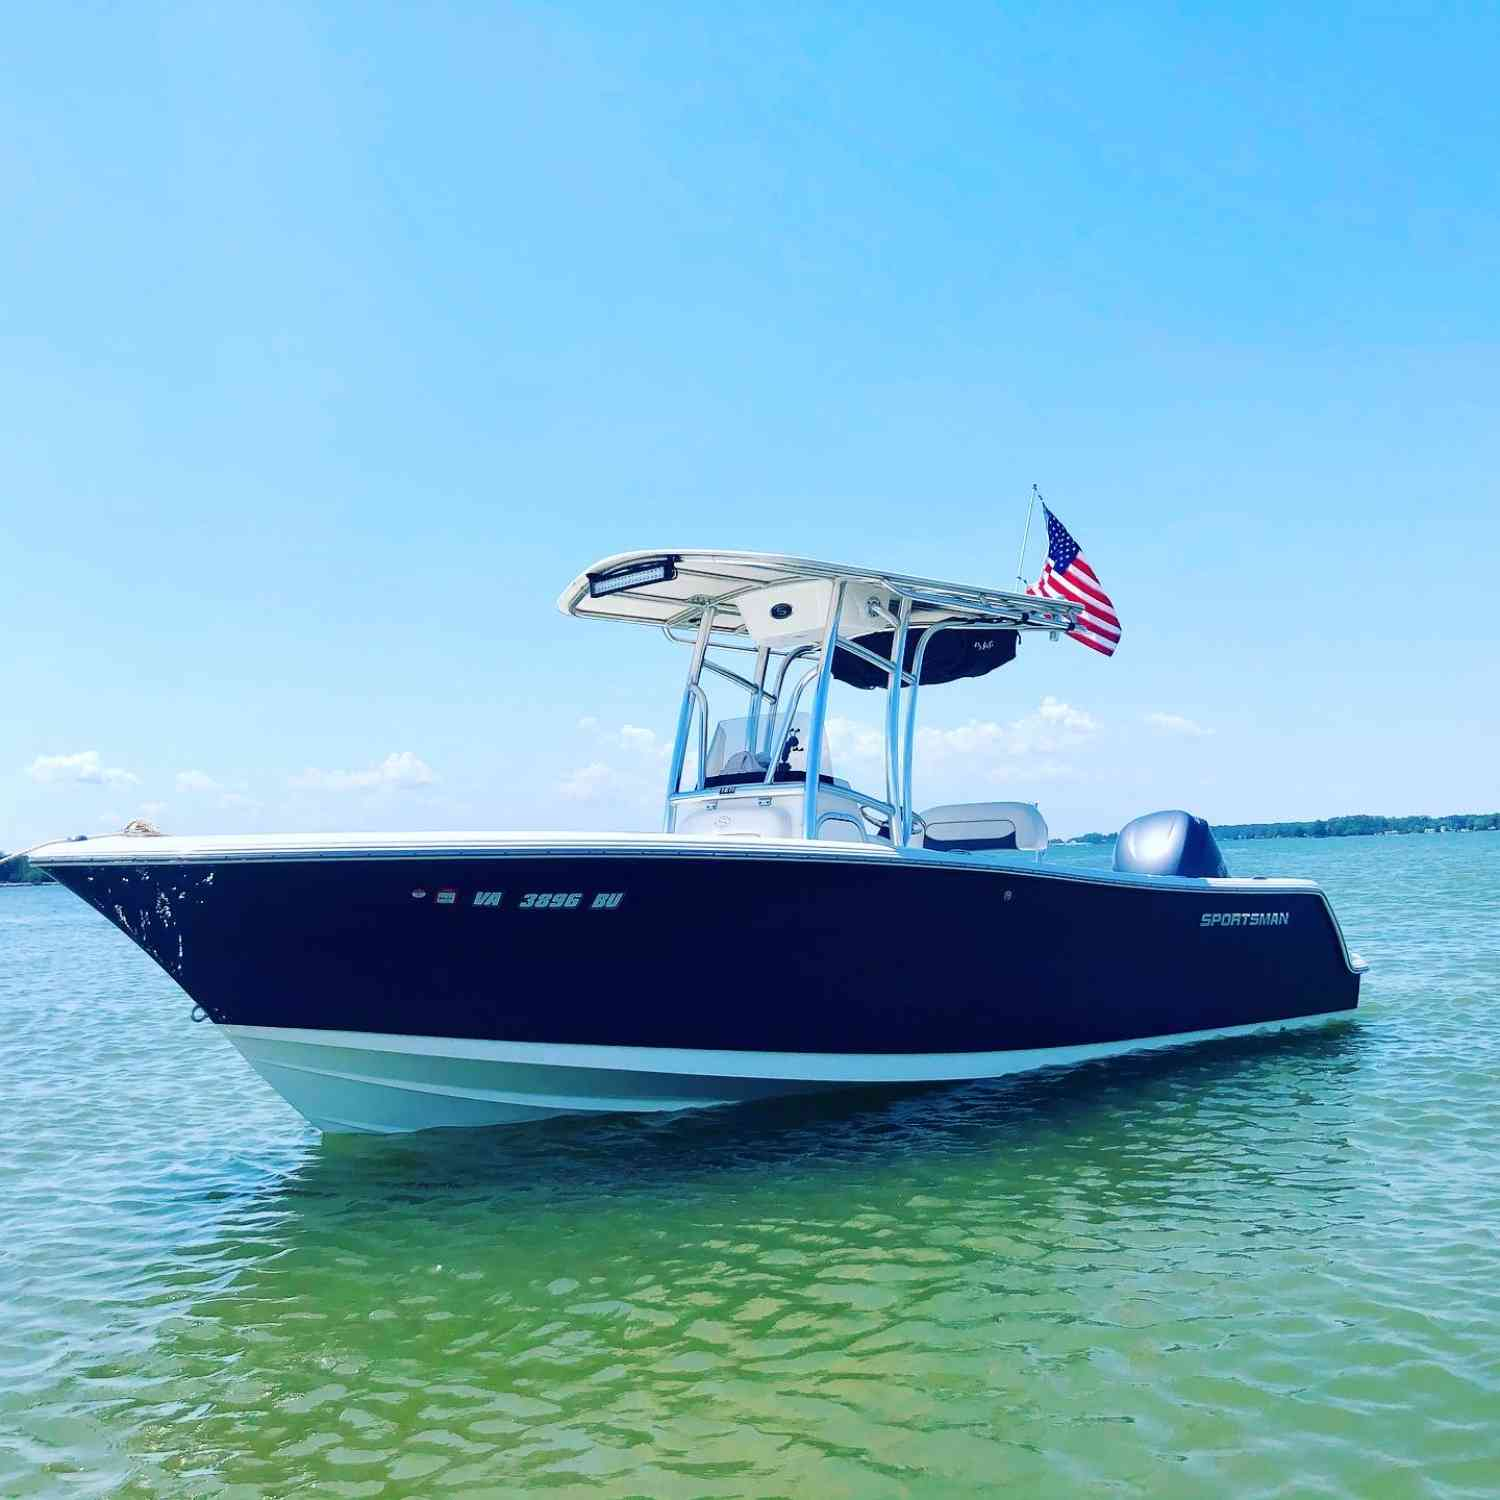 Title: Patriotism - On board their Sportsman Heritage 231 Center Console - Location: Gwynns Island VA. Participating in the Photo Contest #SportsmanJune2021